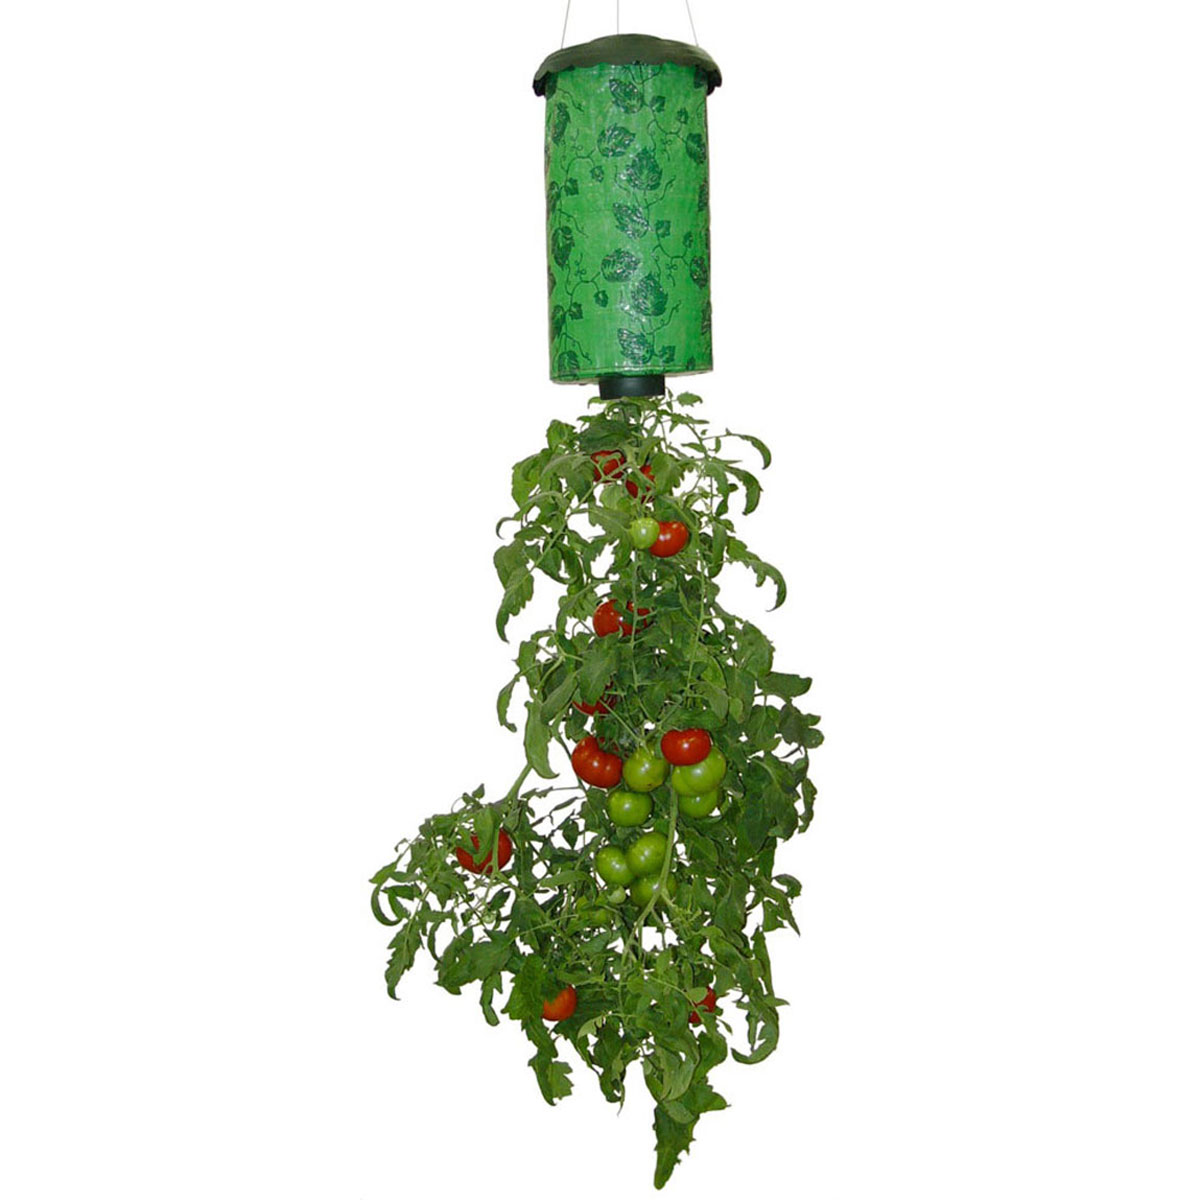 Topsy turvy upside down tomato flower and vegetable - Planter tomates cerises en pot ...